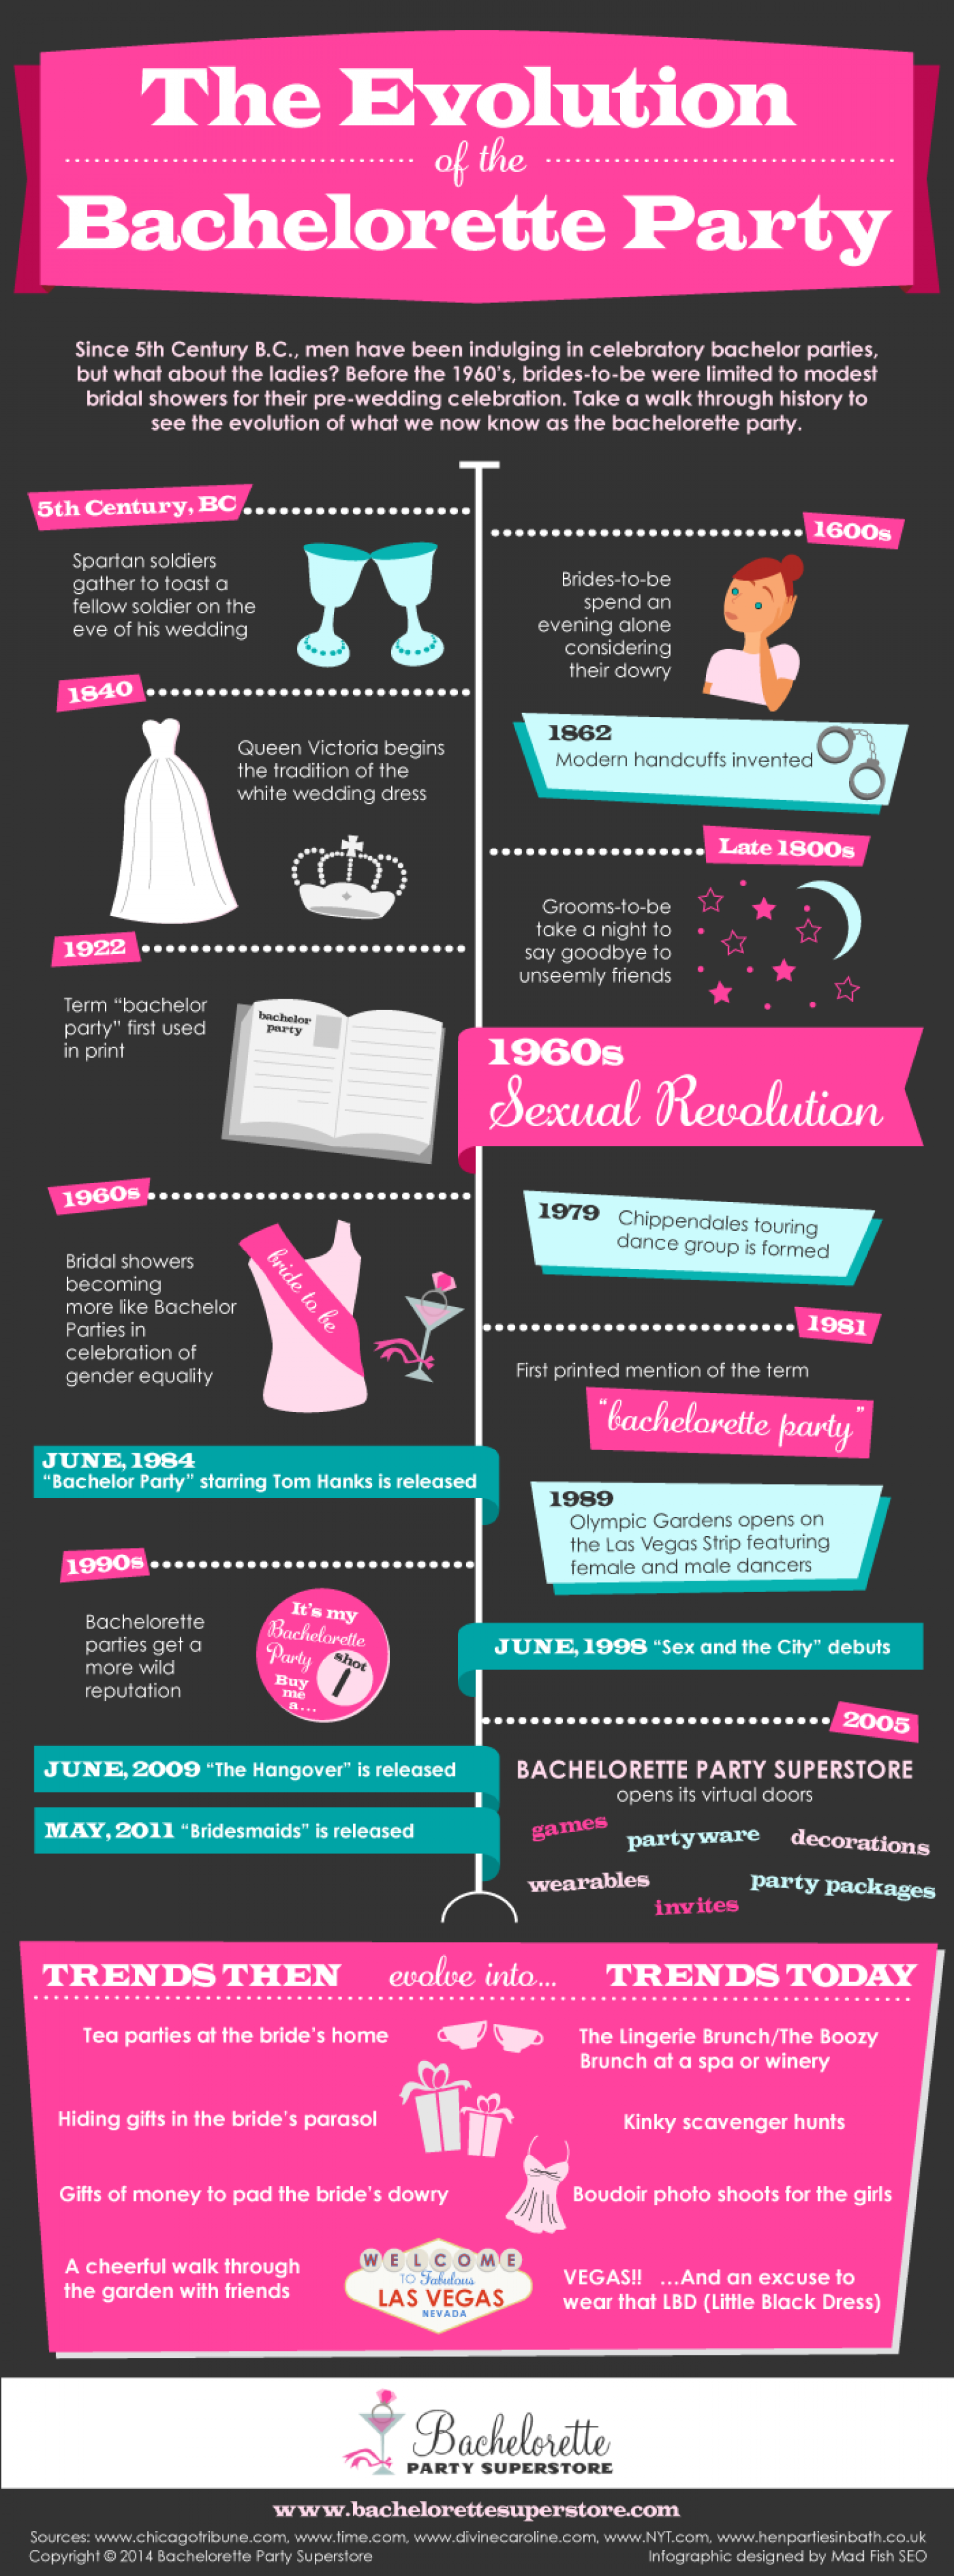 The Evolution of the Bachelorette Party Infographic